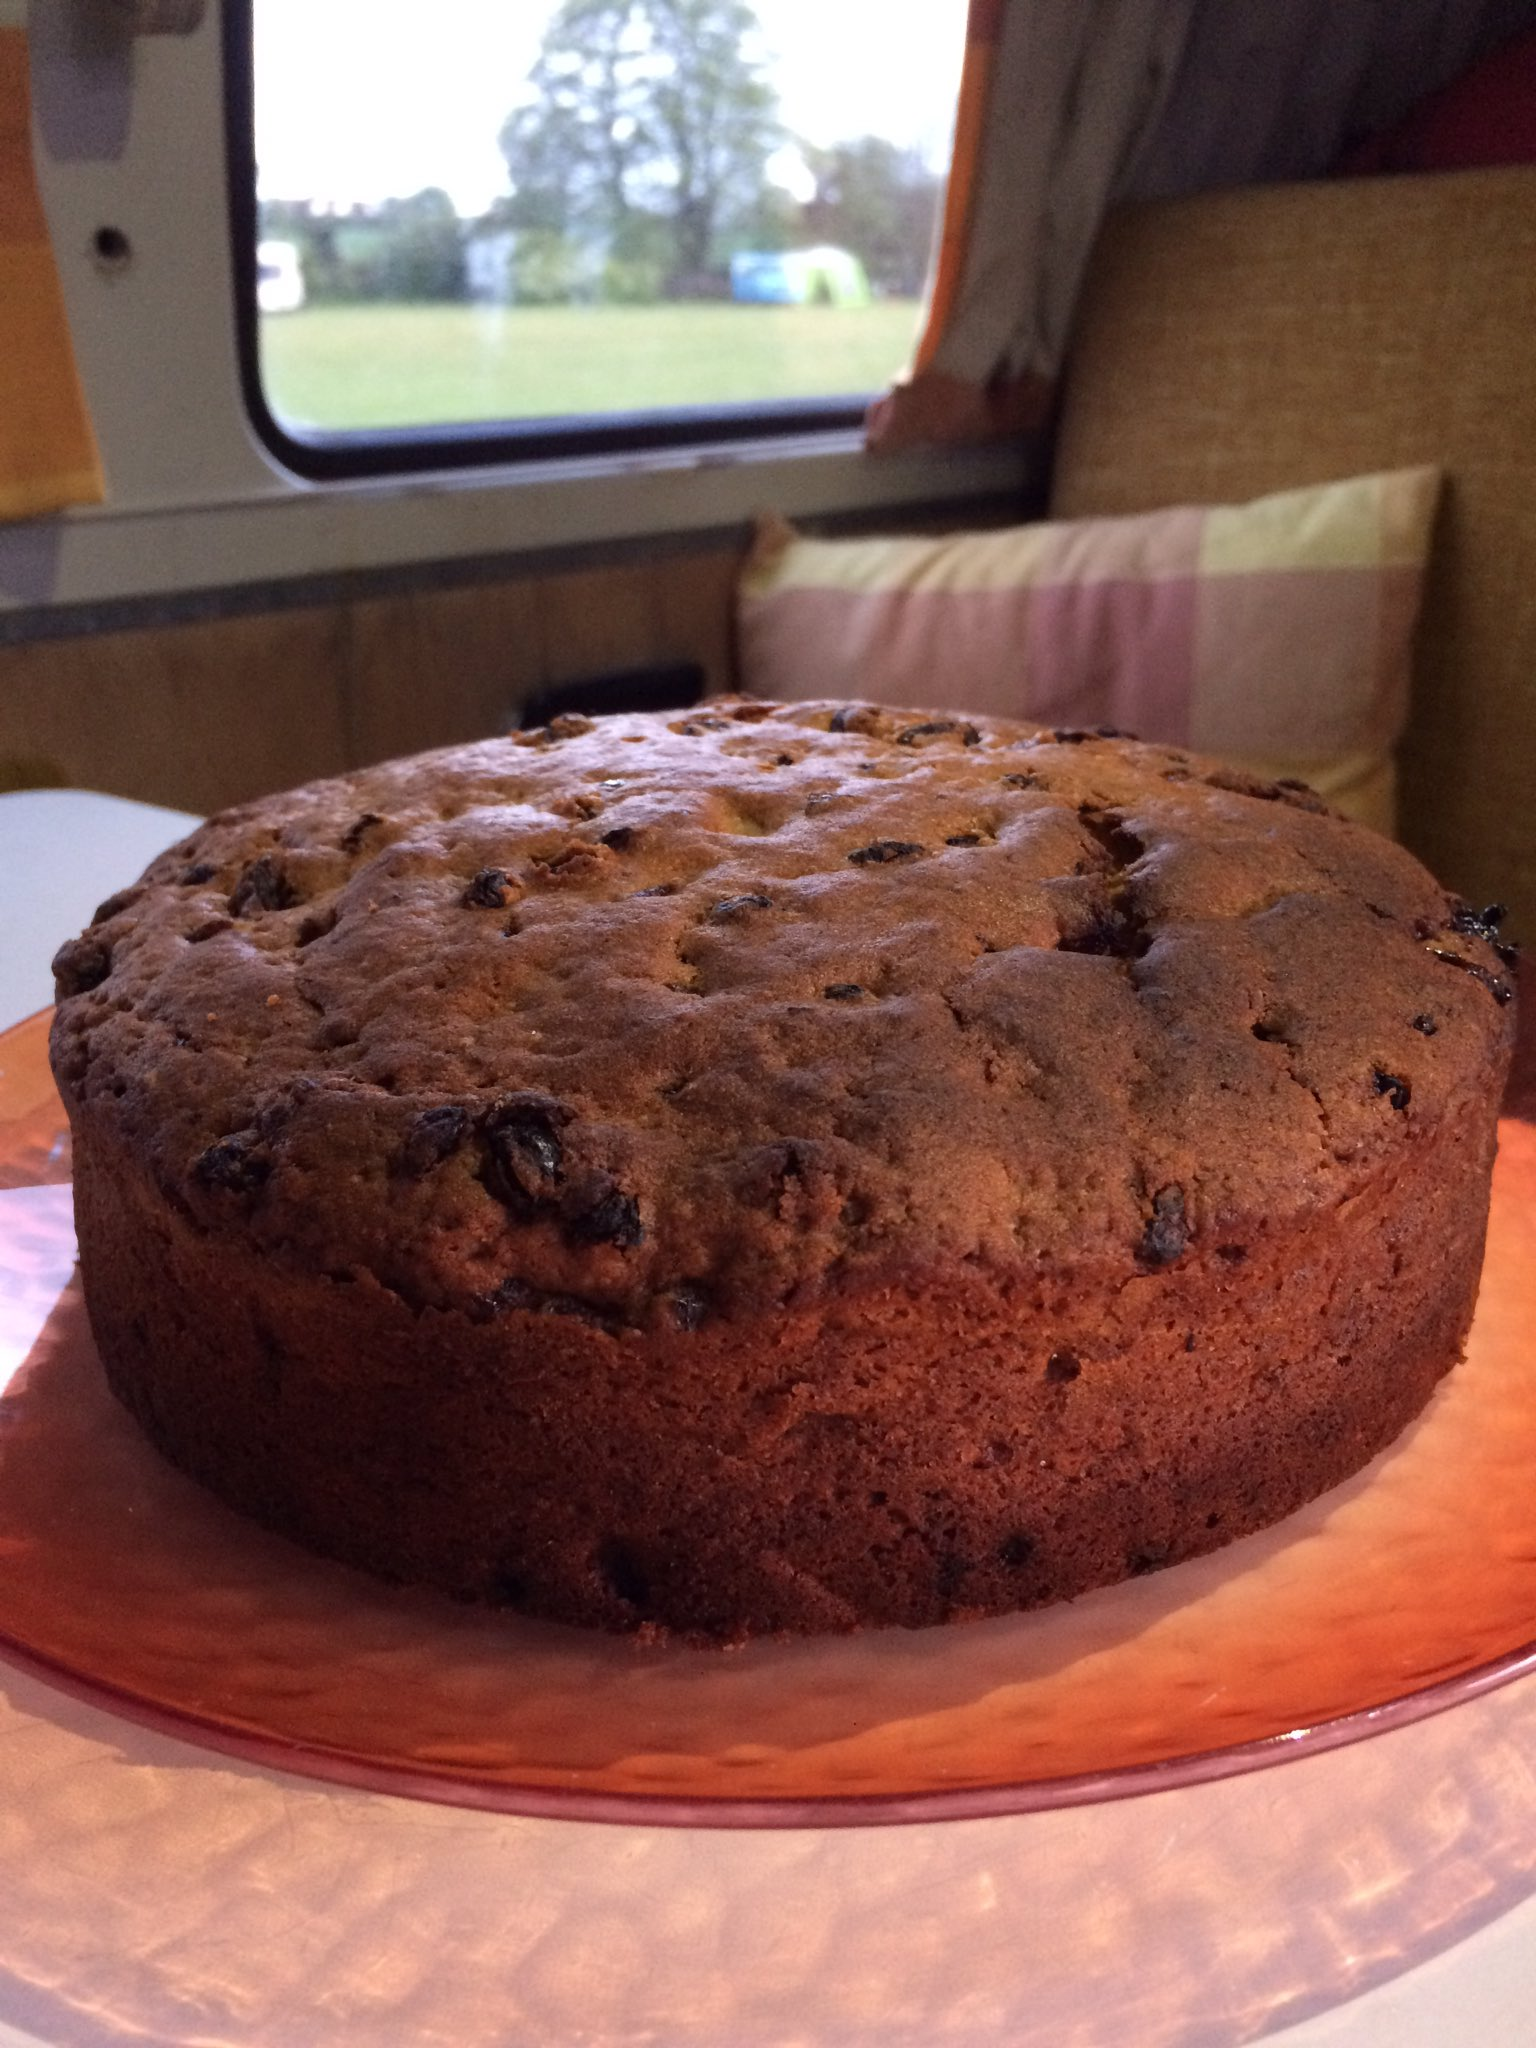 RT @AmandaHewish: Happy Birthday to my Hubby! 😘 Made @lisafaulkner1's Farmhouse Cider Cake 😋 perfect when camping! 🚌 https://t.co/GFkpKR3AFE